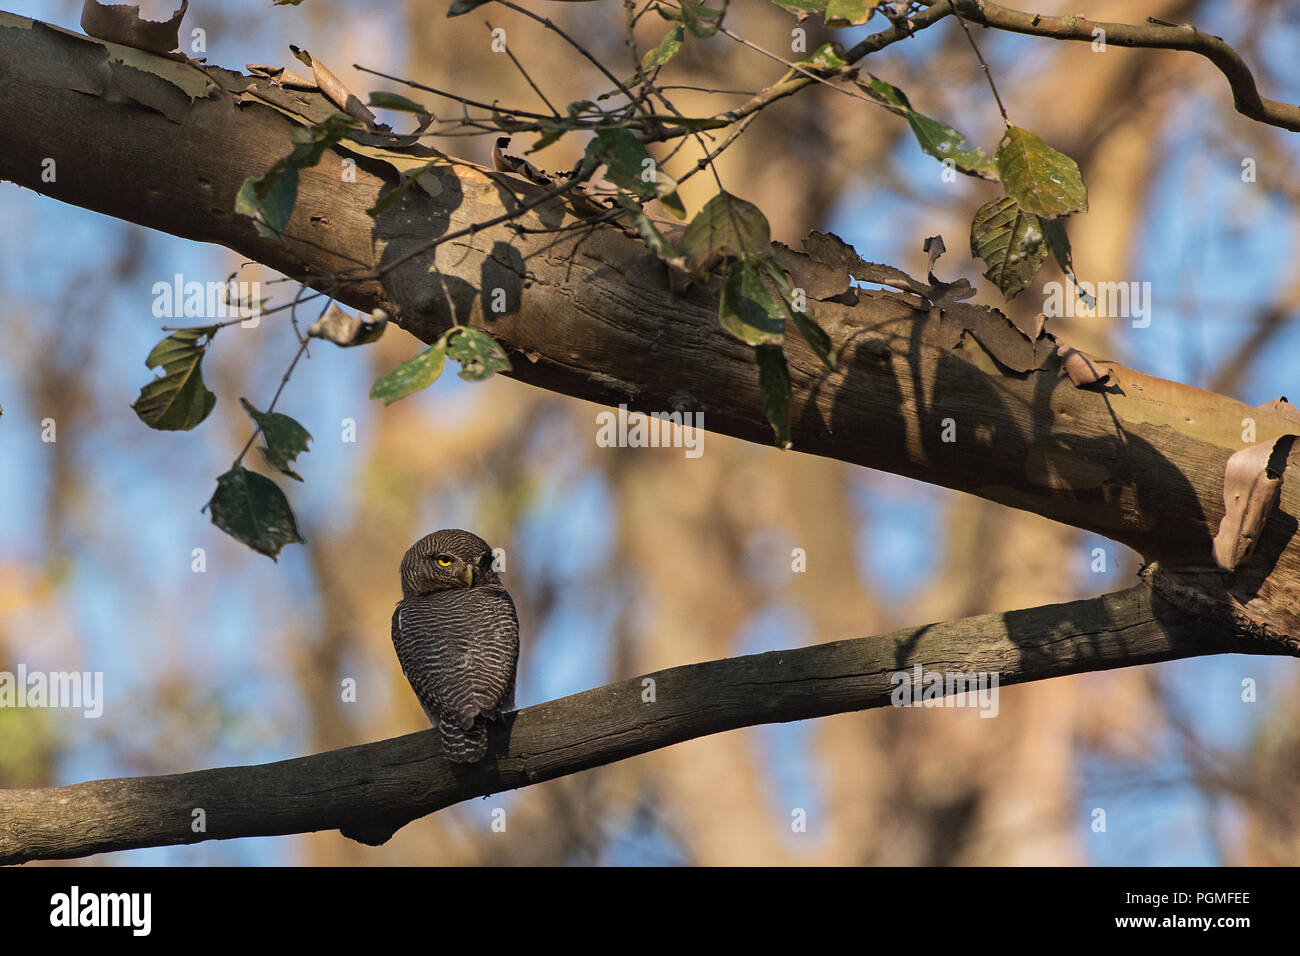 A Jungle Owlet (Glaucidium radiatum) perched on a branch in the